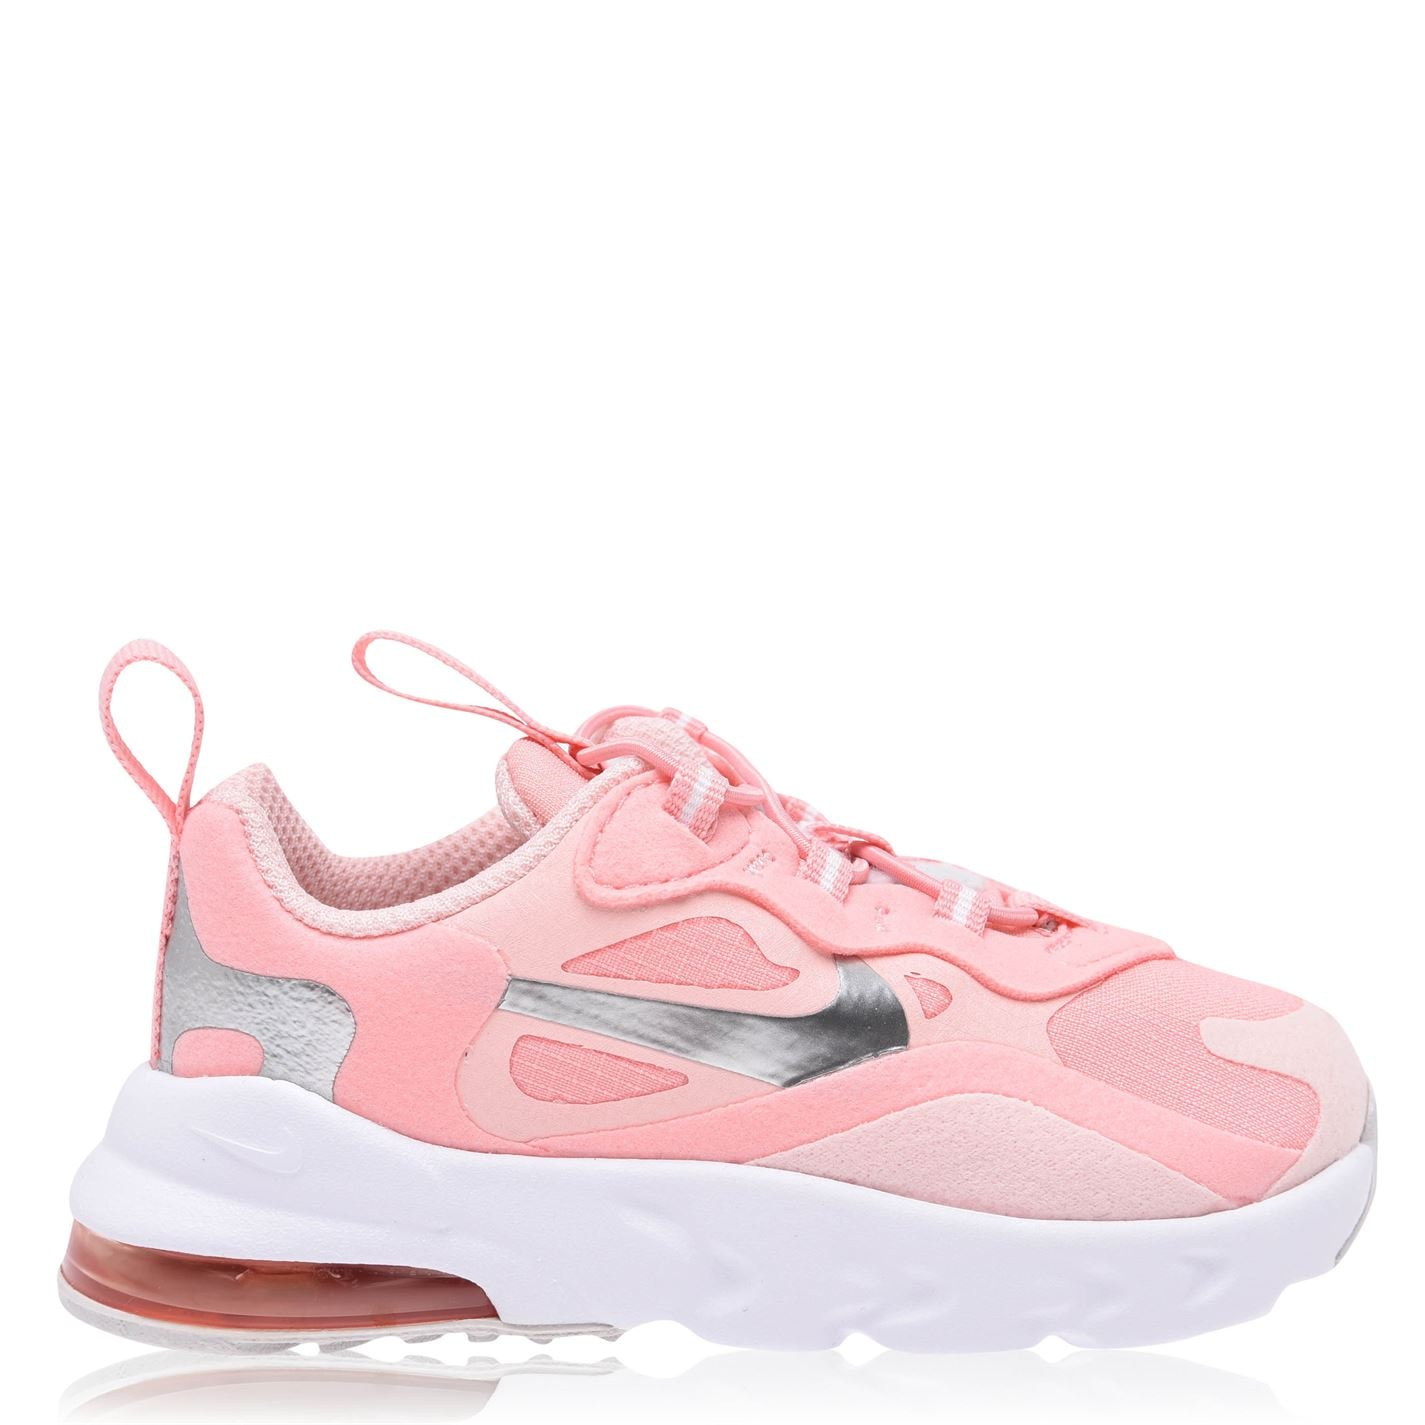 Nike Air Max 270 Trainers Infant Girls Pink/Silver